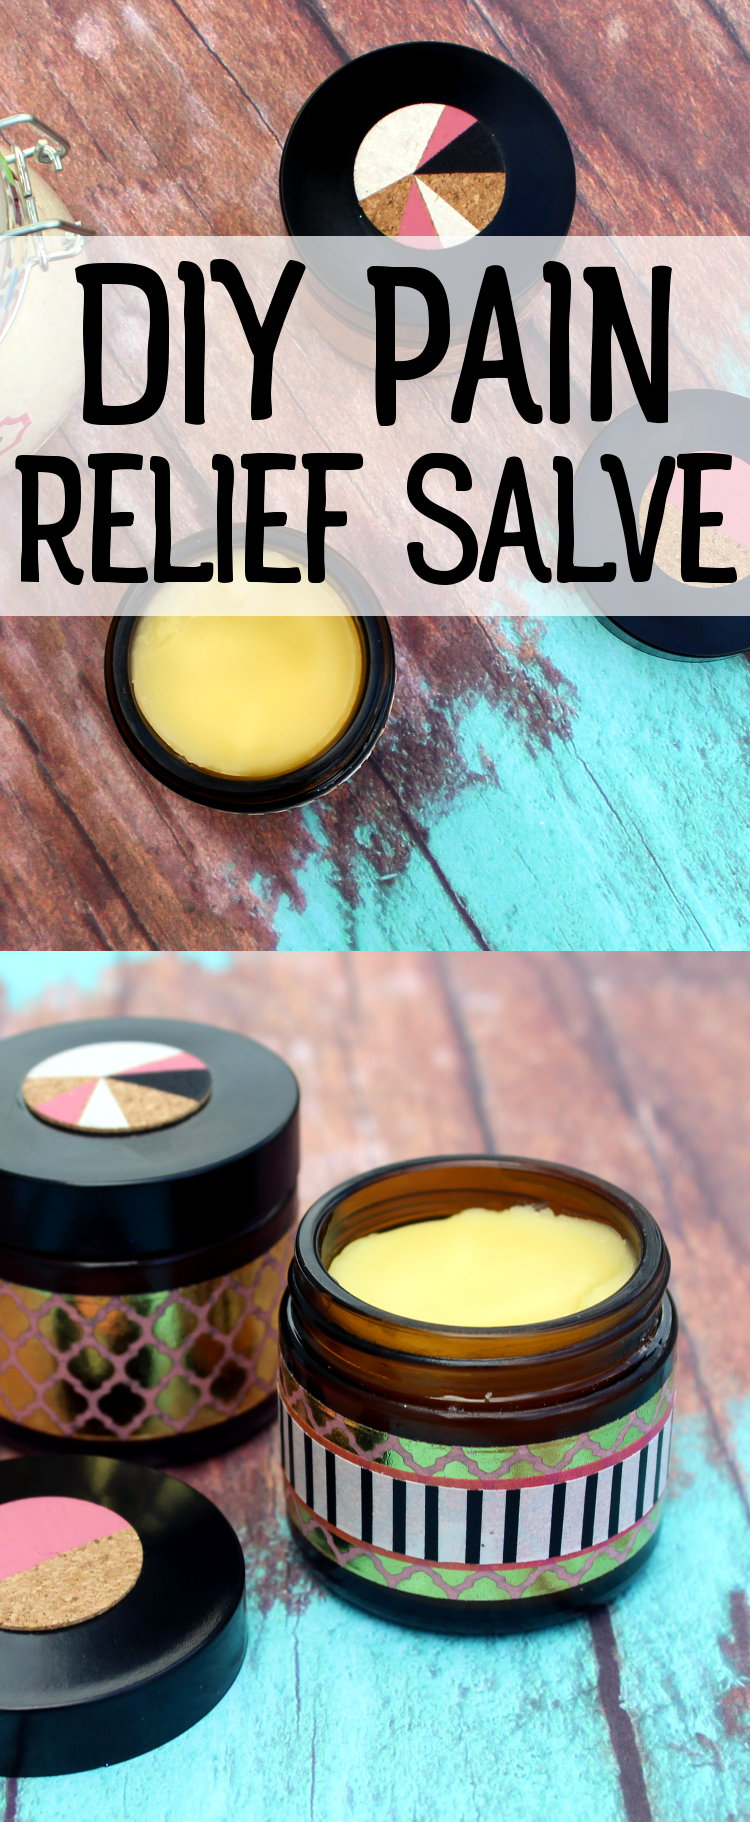 Arnica Pain Relief Salve Recipe for Sore Muscles and Inflammation! Whether you suffer from pain due to occasional bumps and bruises and sore muscles or more intense pain resulting from chronic conditions such as arthritis or carpal tunnel, this arnica pain relief salve recipe is the perfect natural remedy for muscle pain and inflammation! #painrelief #homeremedies #diy #salve